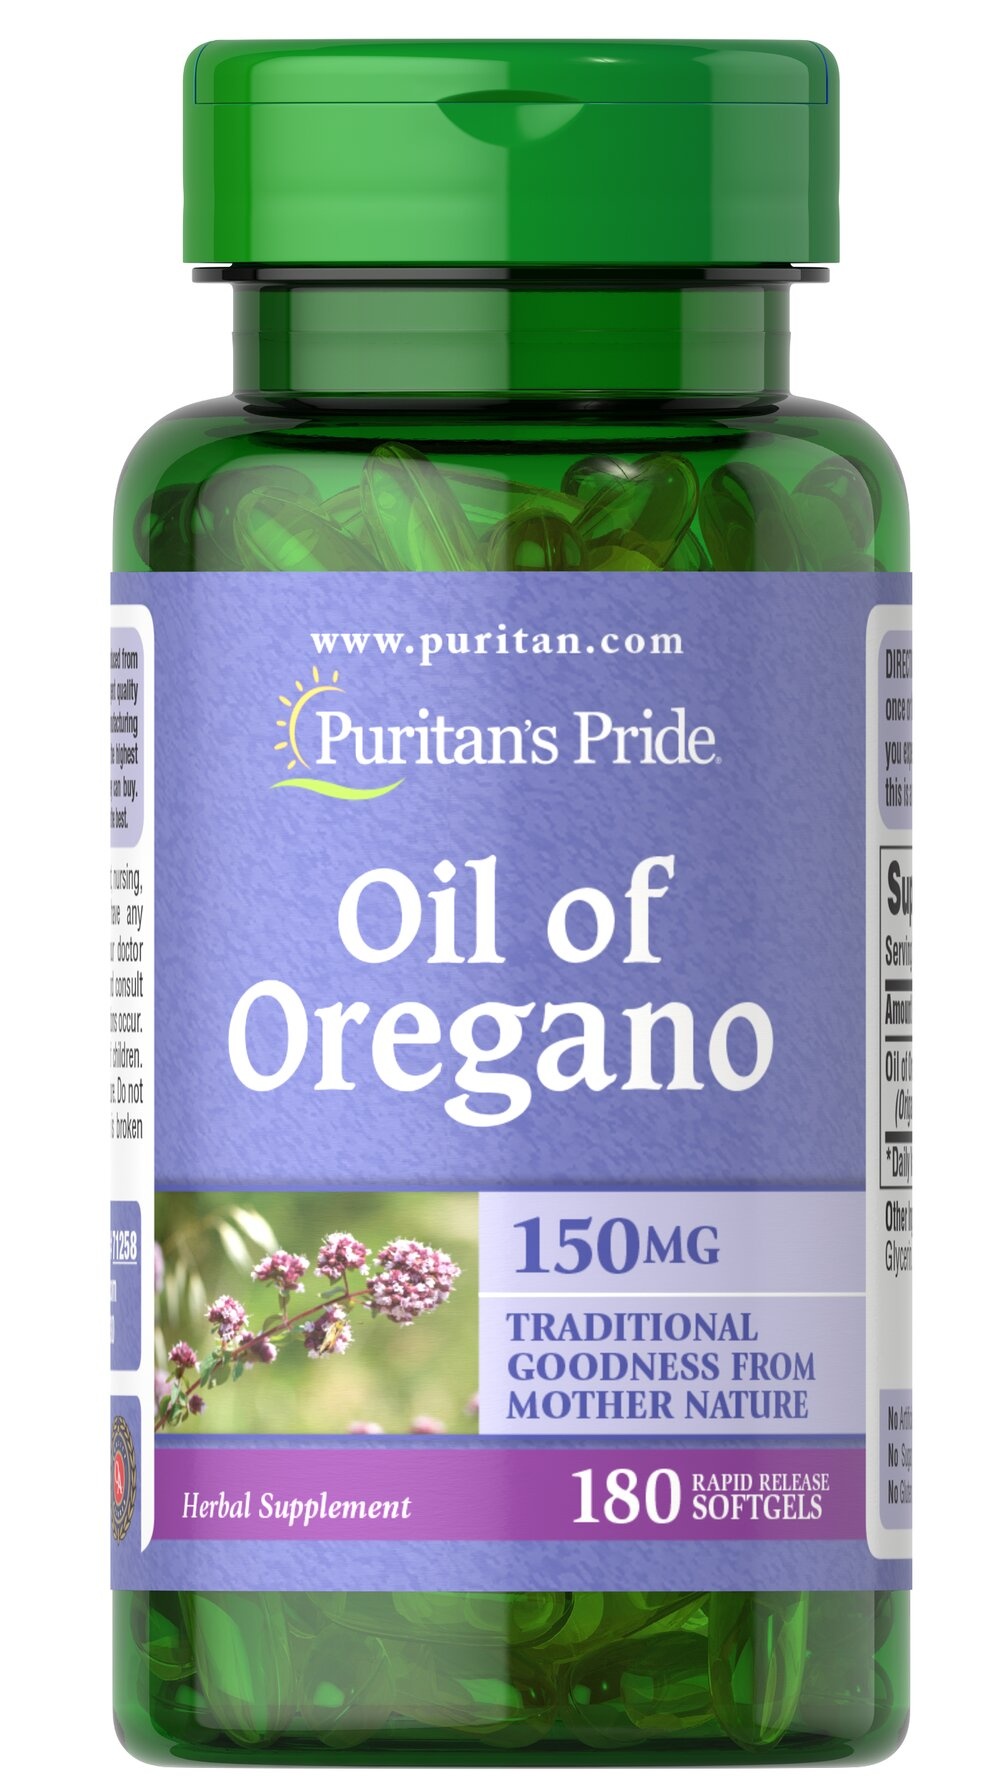 Oil of Oregano 150 mg (1,500mg equivalent*) Thumbnail Alternate Bottle View